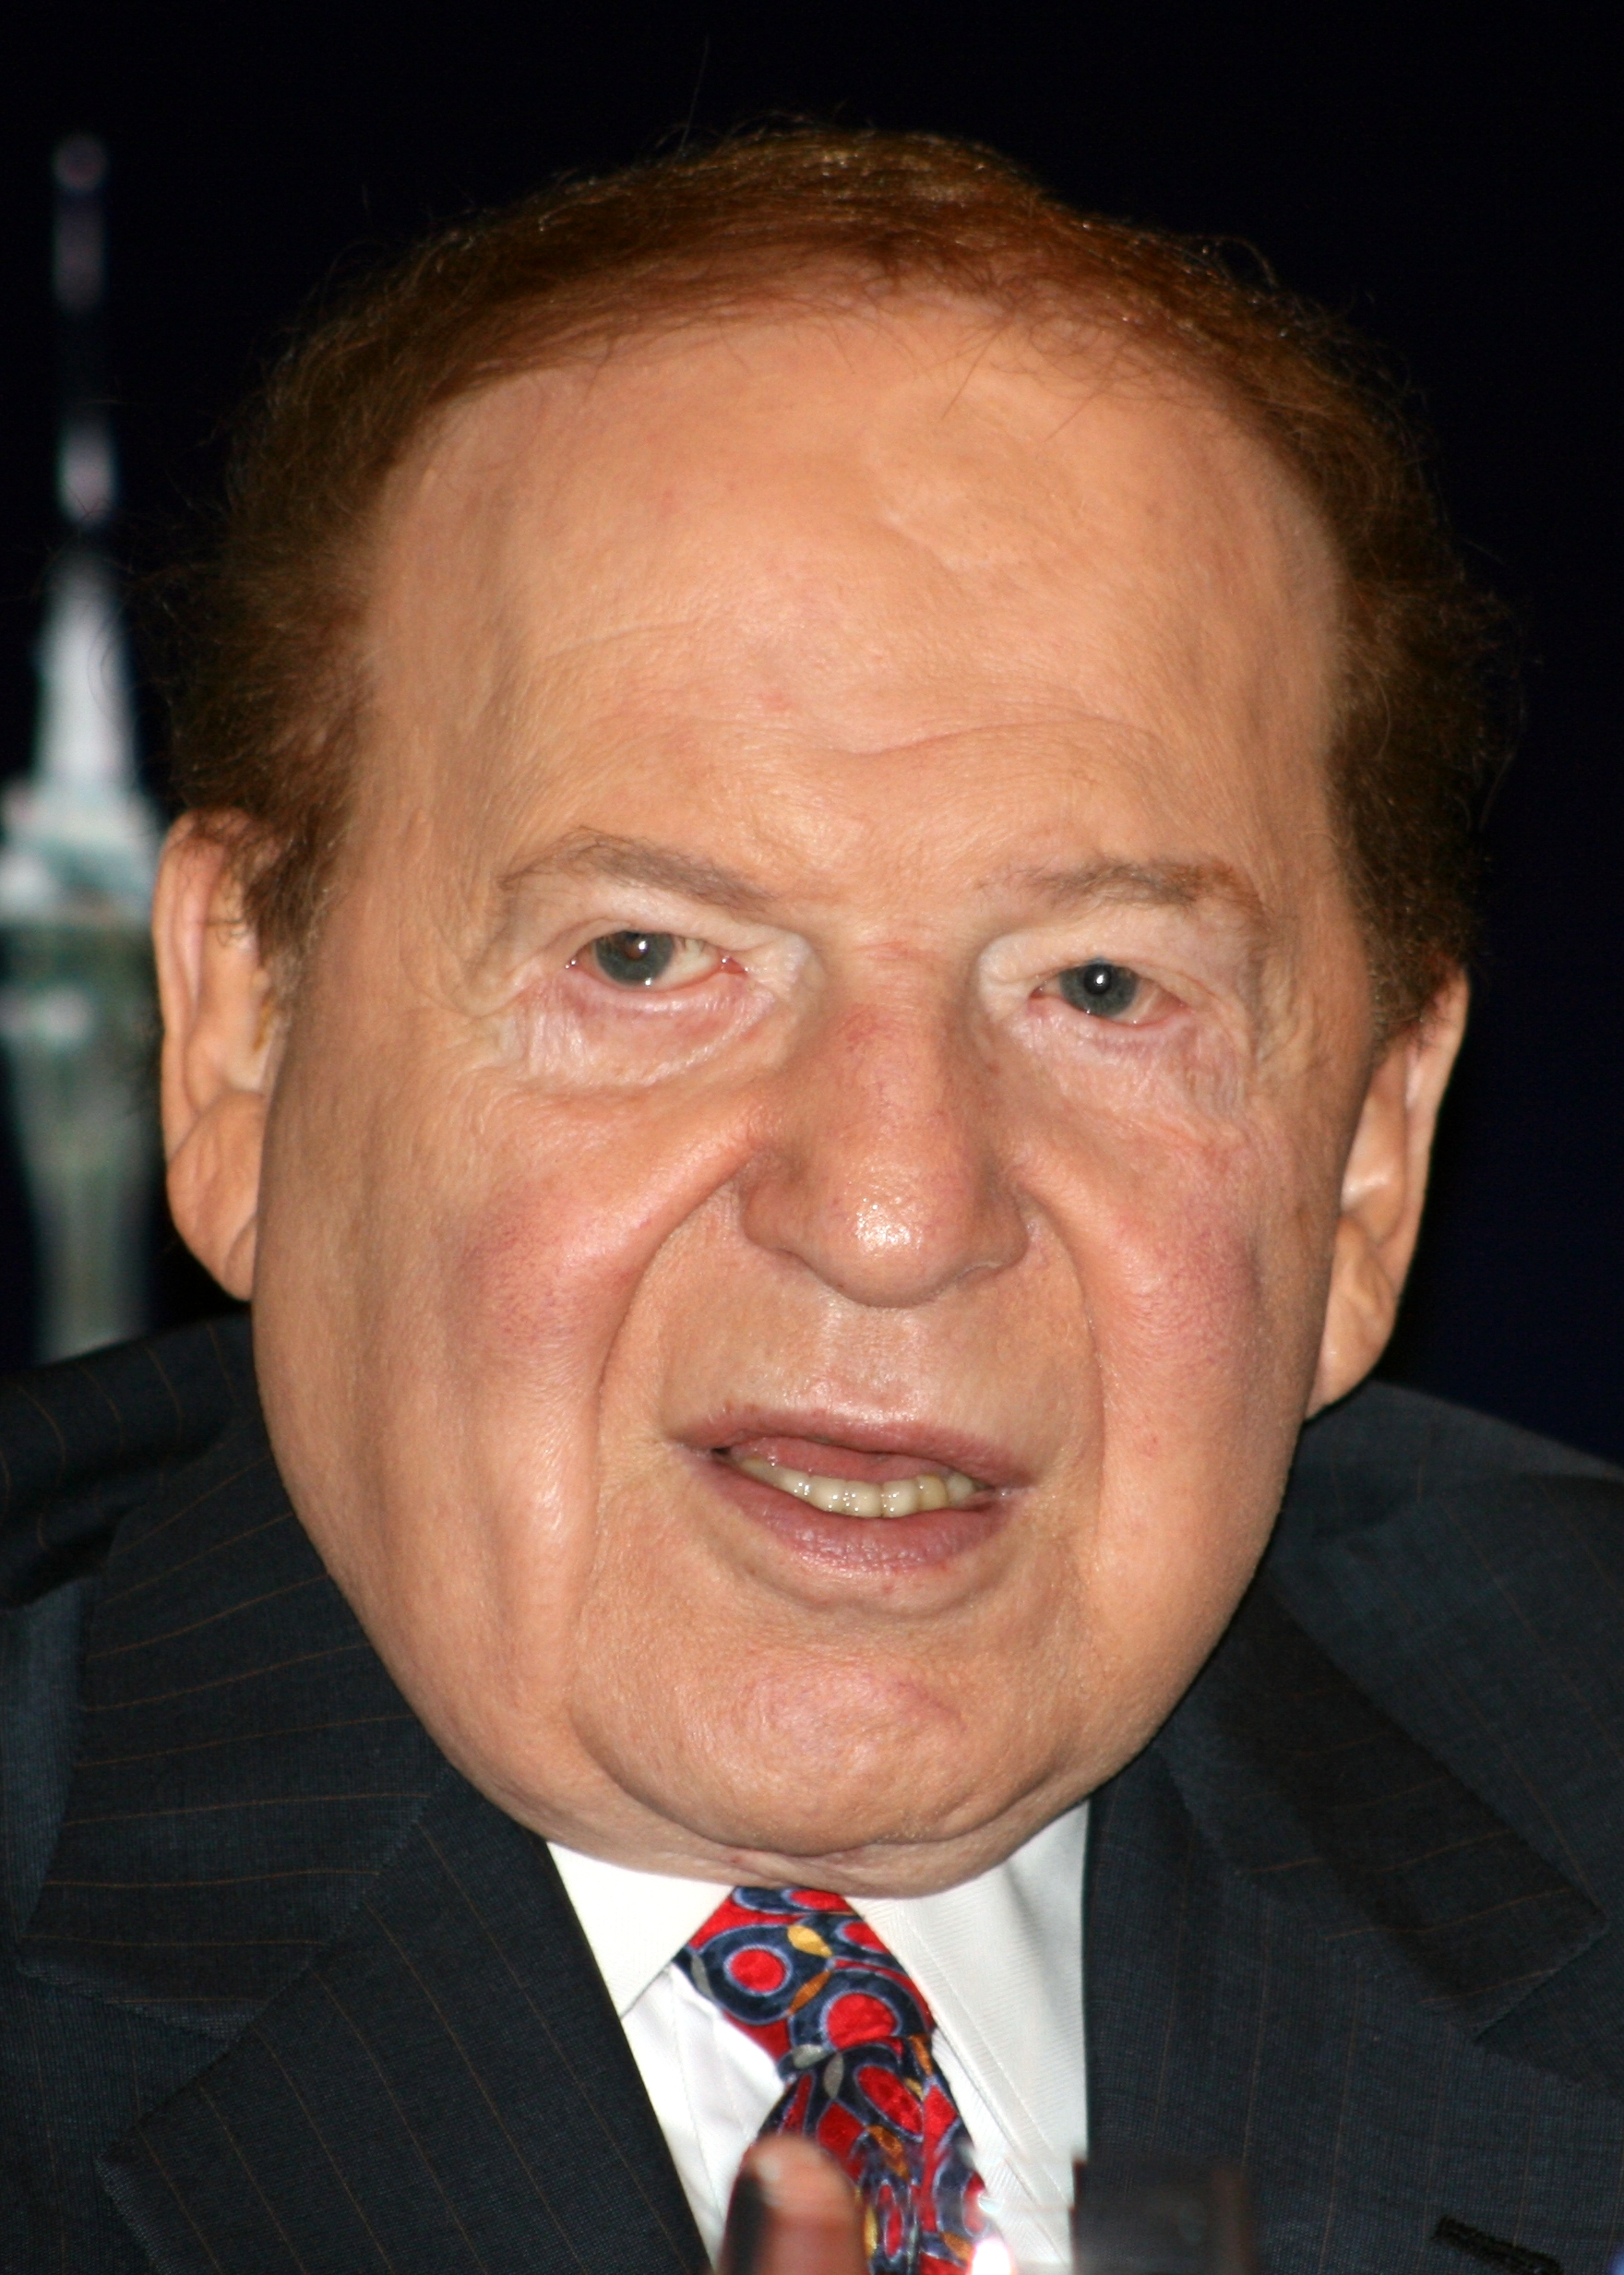 Dear Mr Adelson: Iranians also have ears